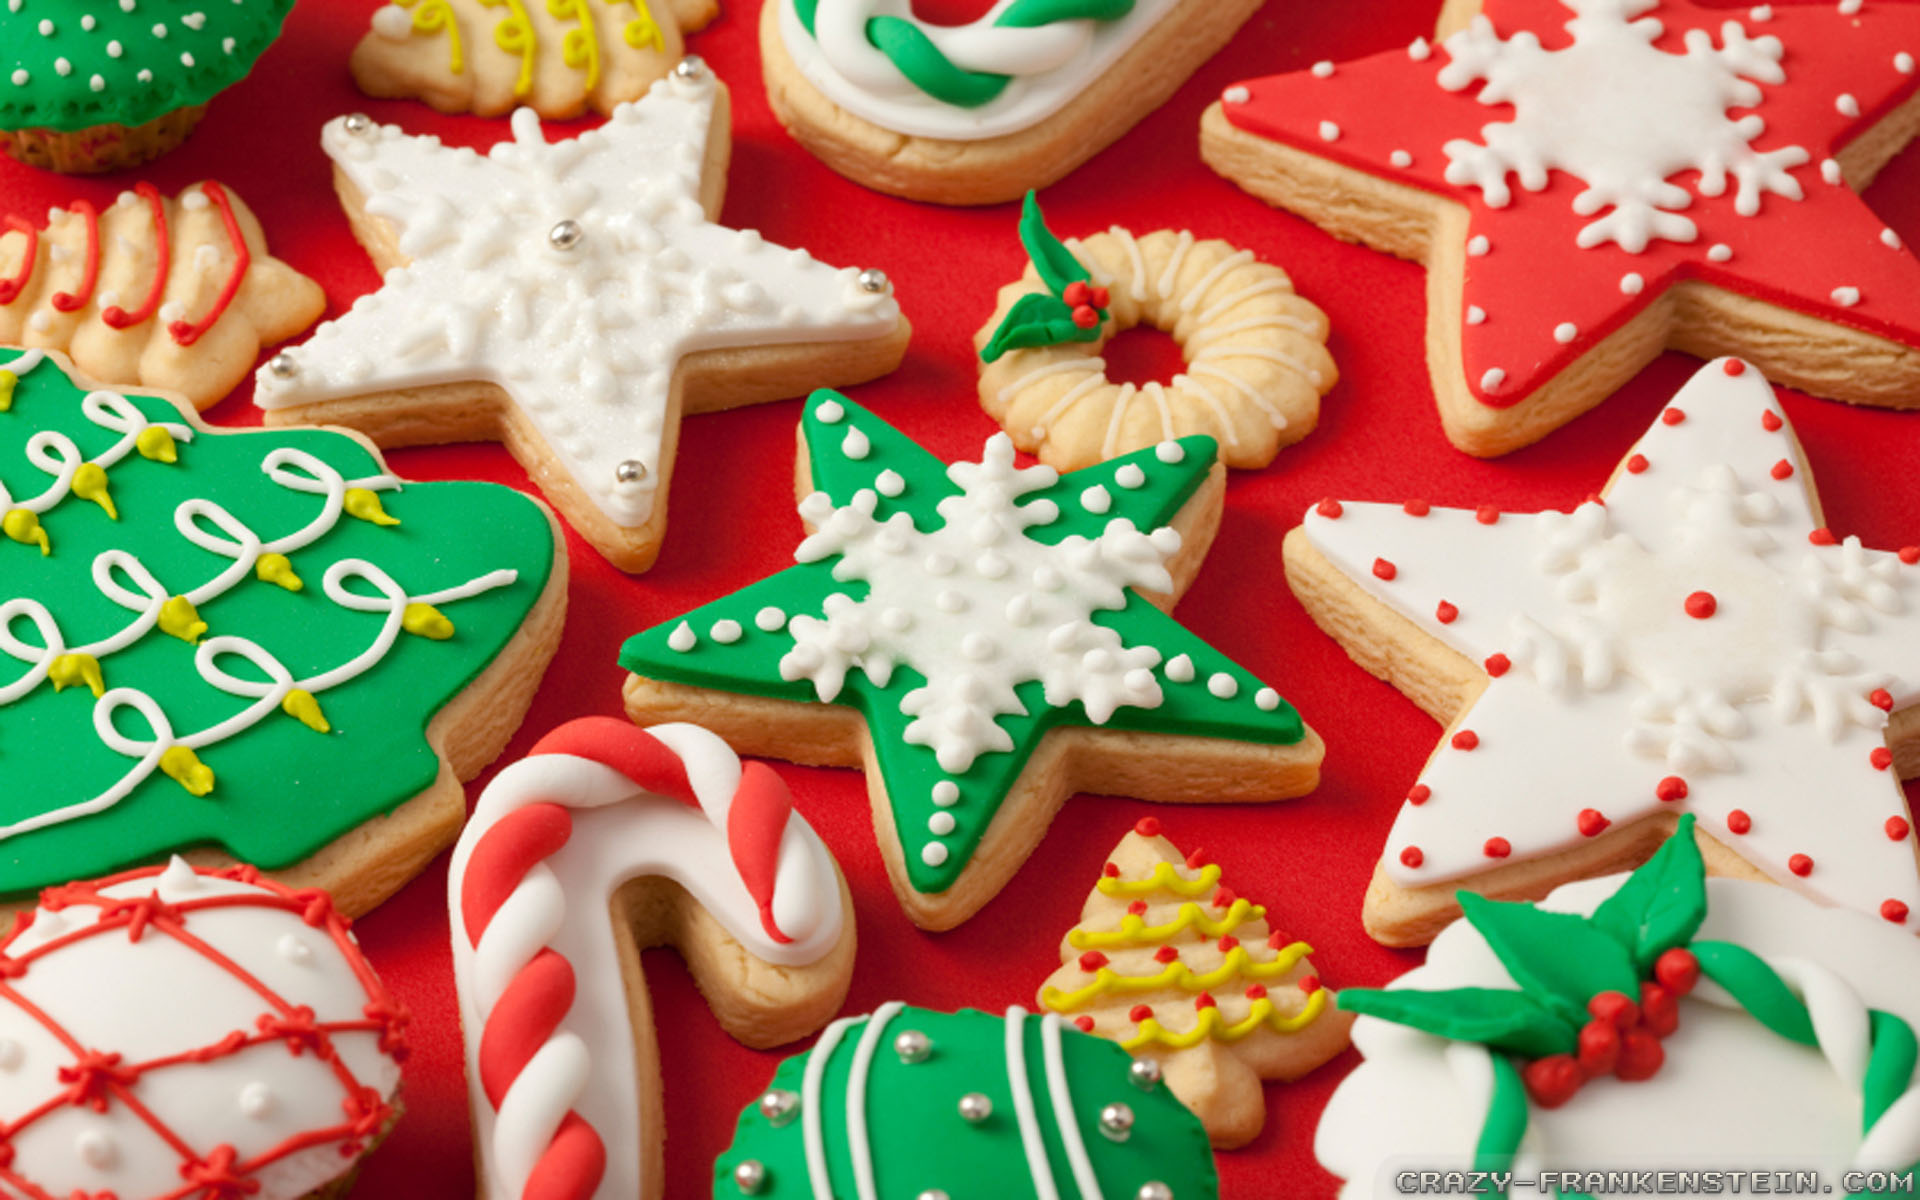 Free Holiday Cookies Wallpaper 41092 1920x1080 px